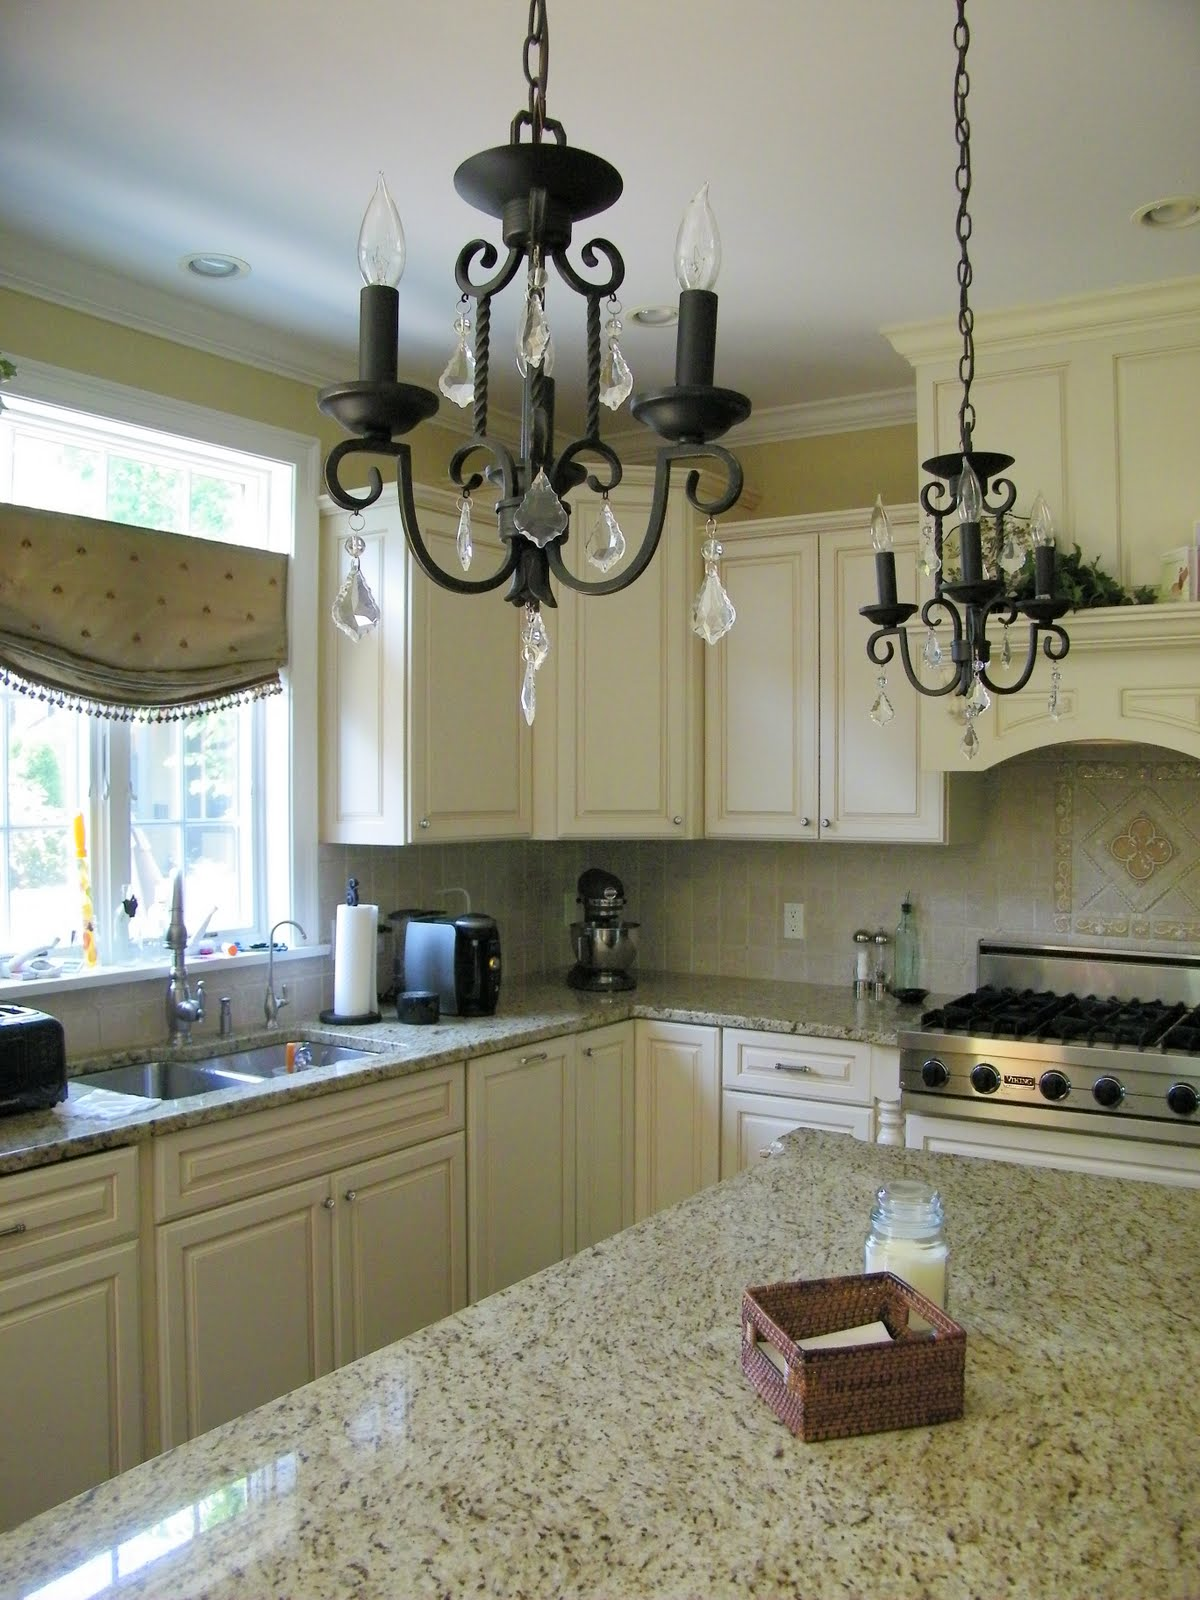 Get Kitchen Cabinet Valance At Wohnschwester Home Inspirations